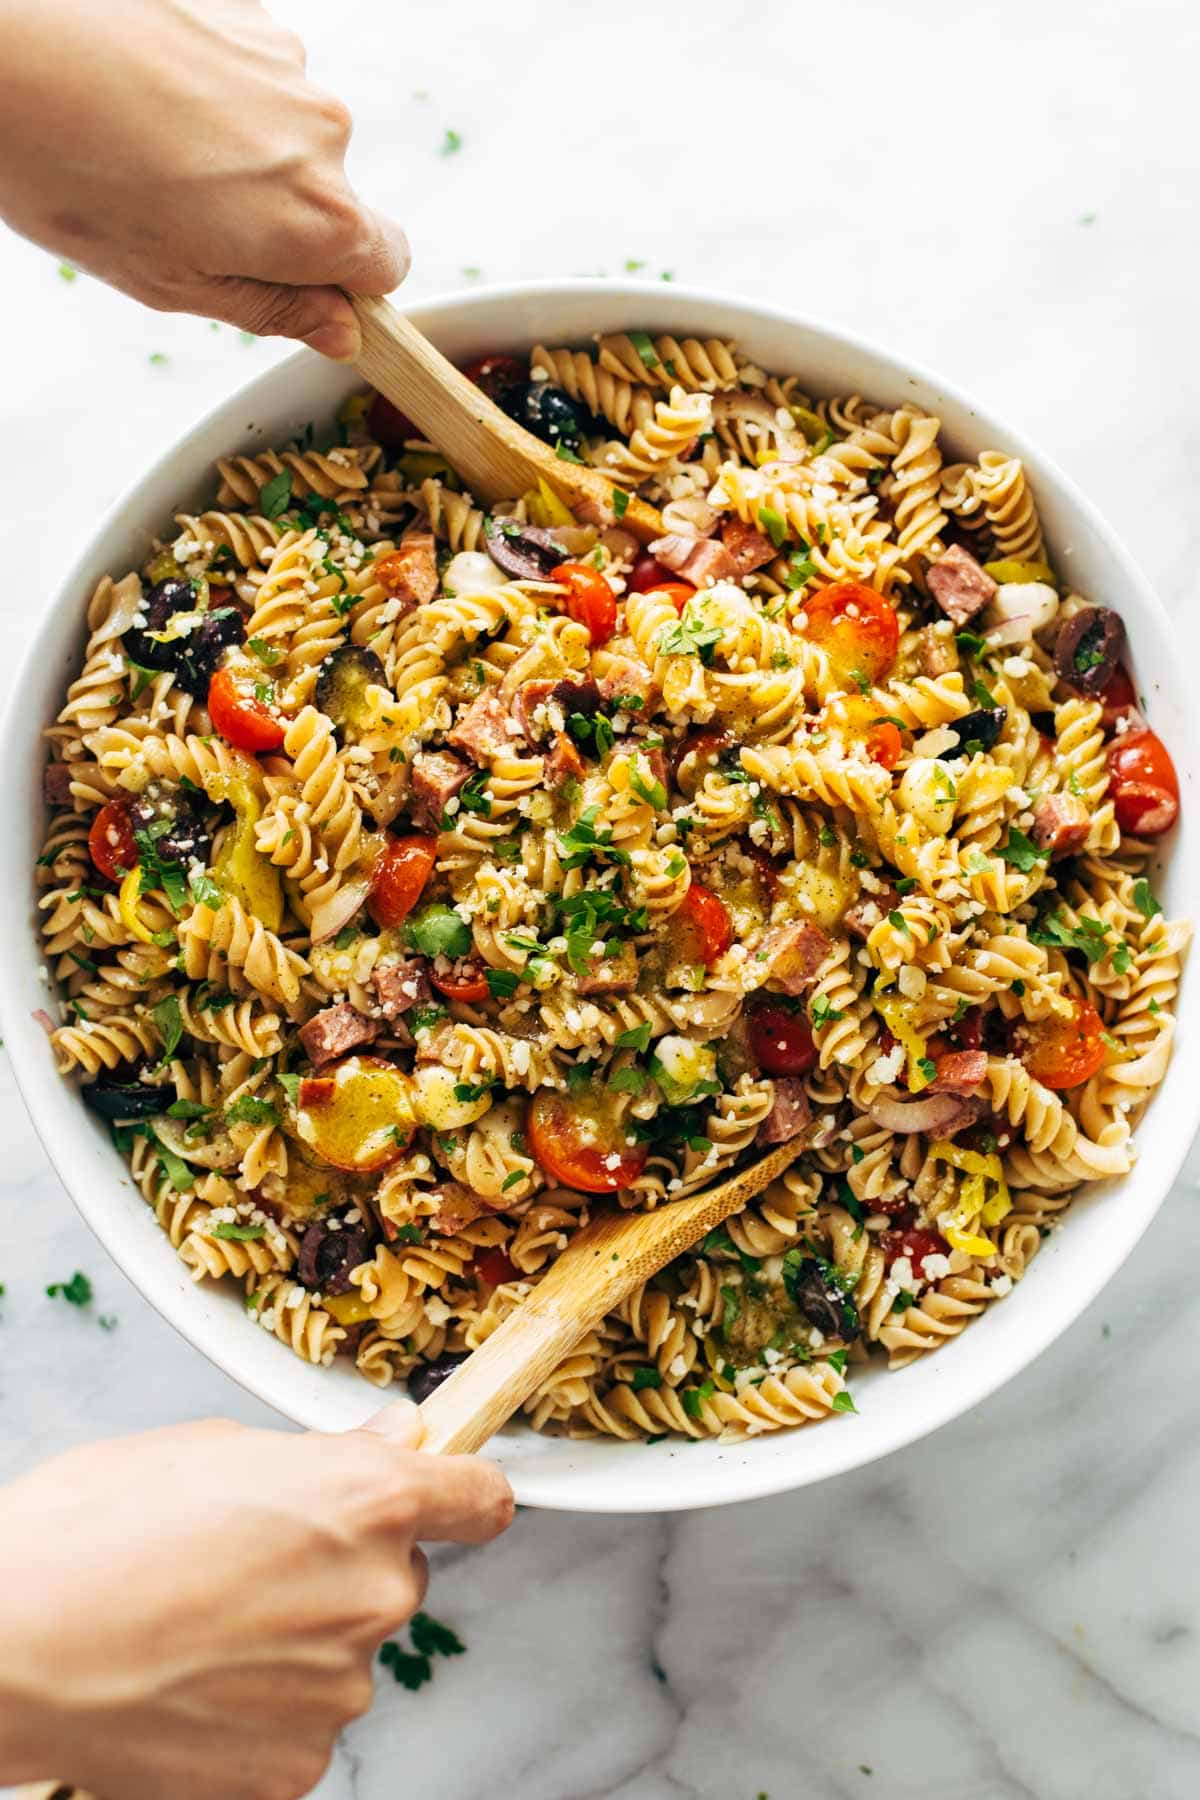 birds eye view of pantry staple quick and easy pasta salad served in a white bowl with wooden serving spoons